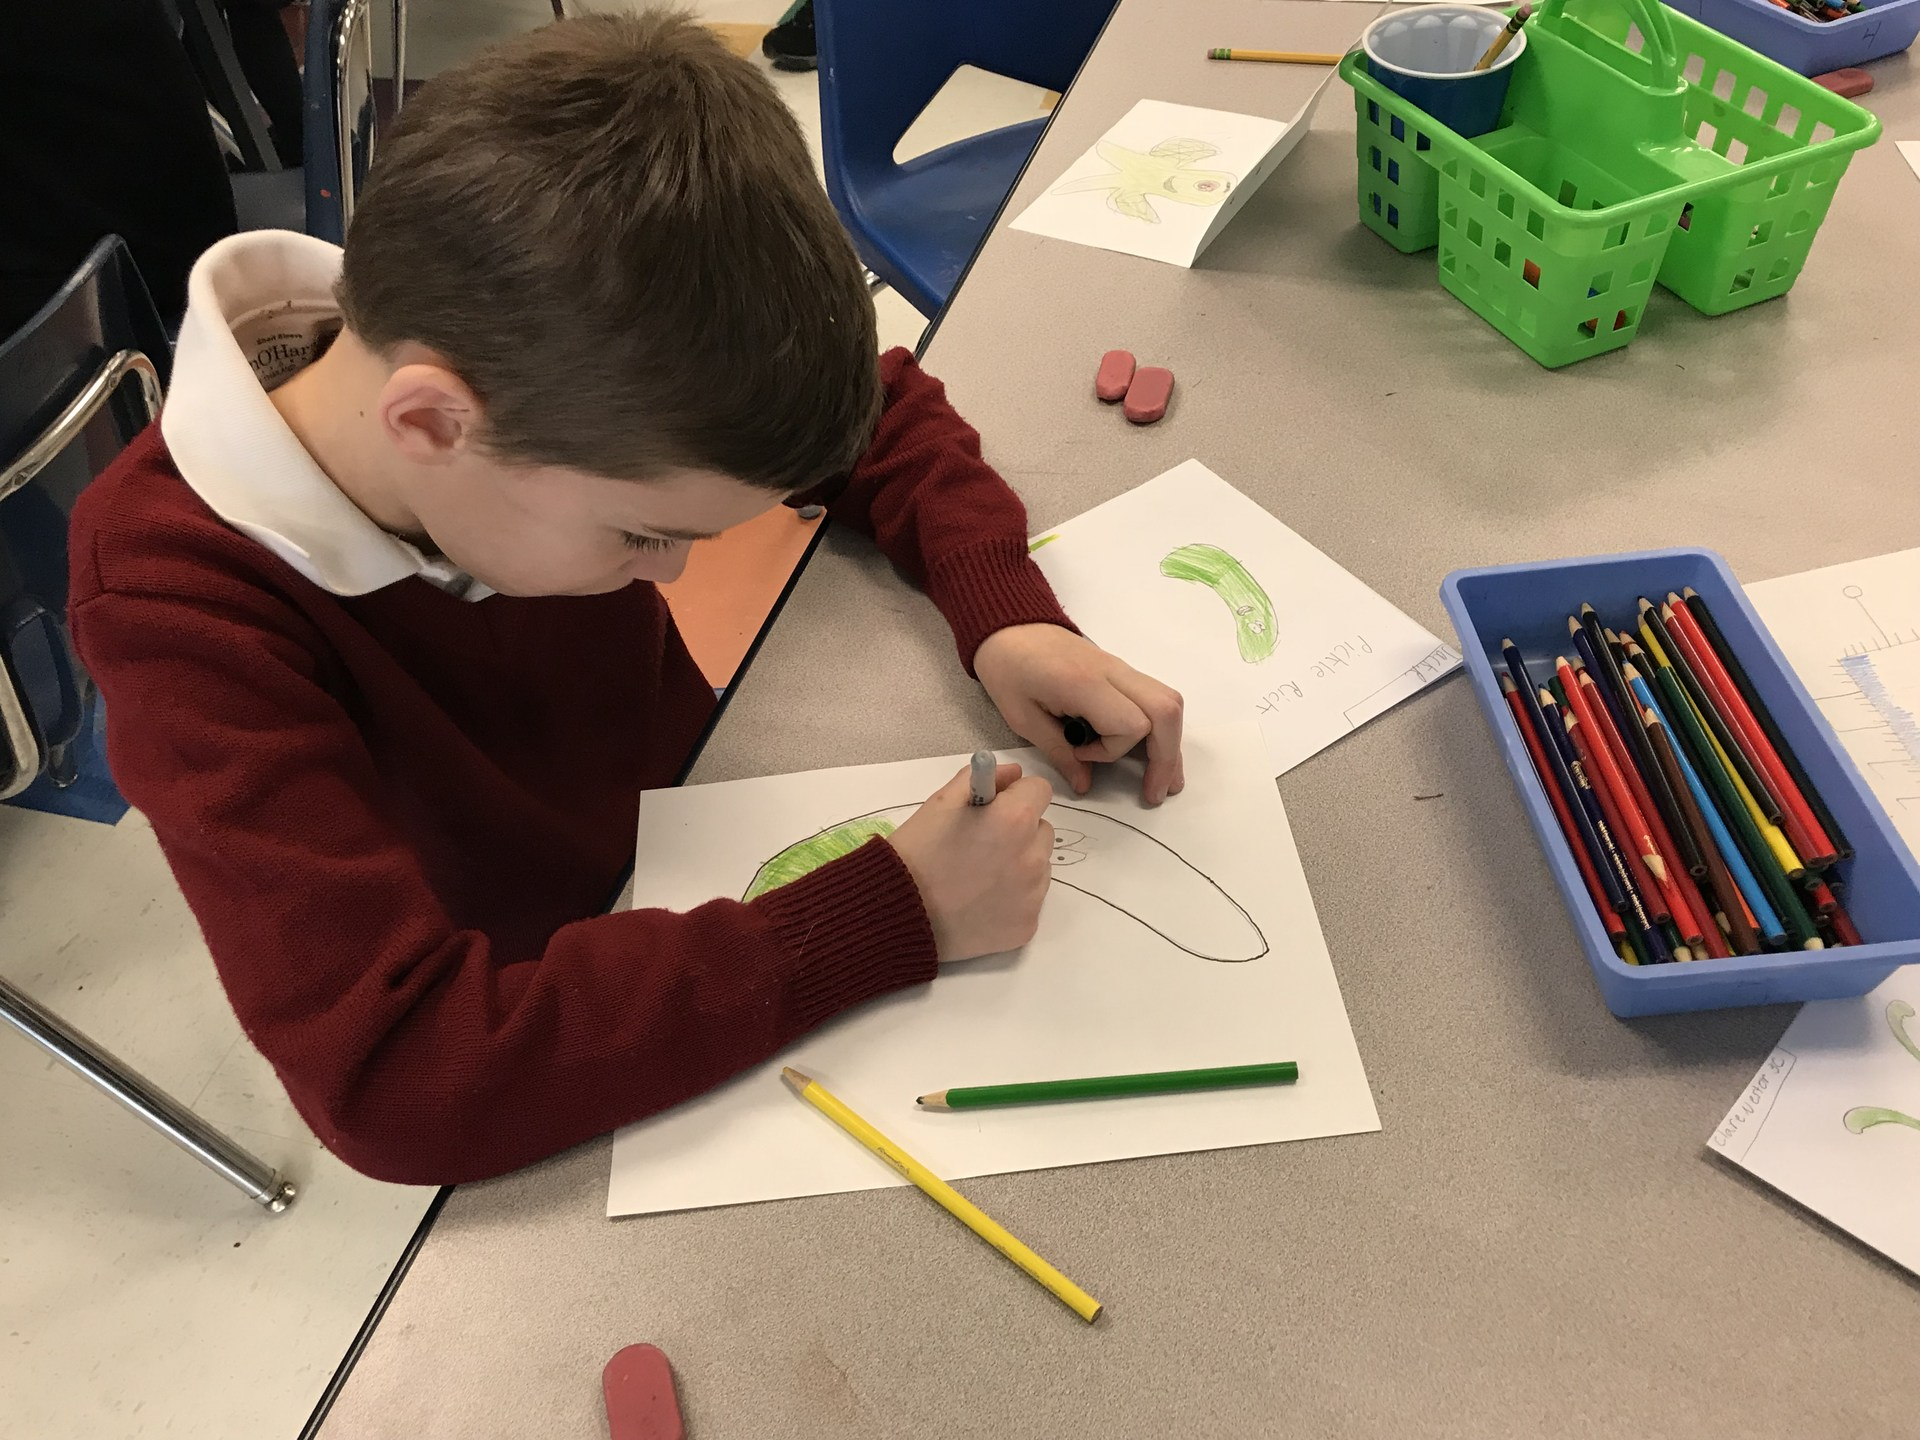 Student drawing picture of a character